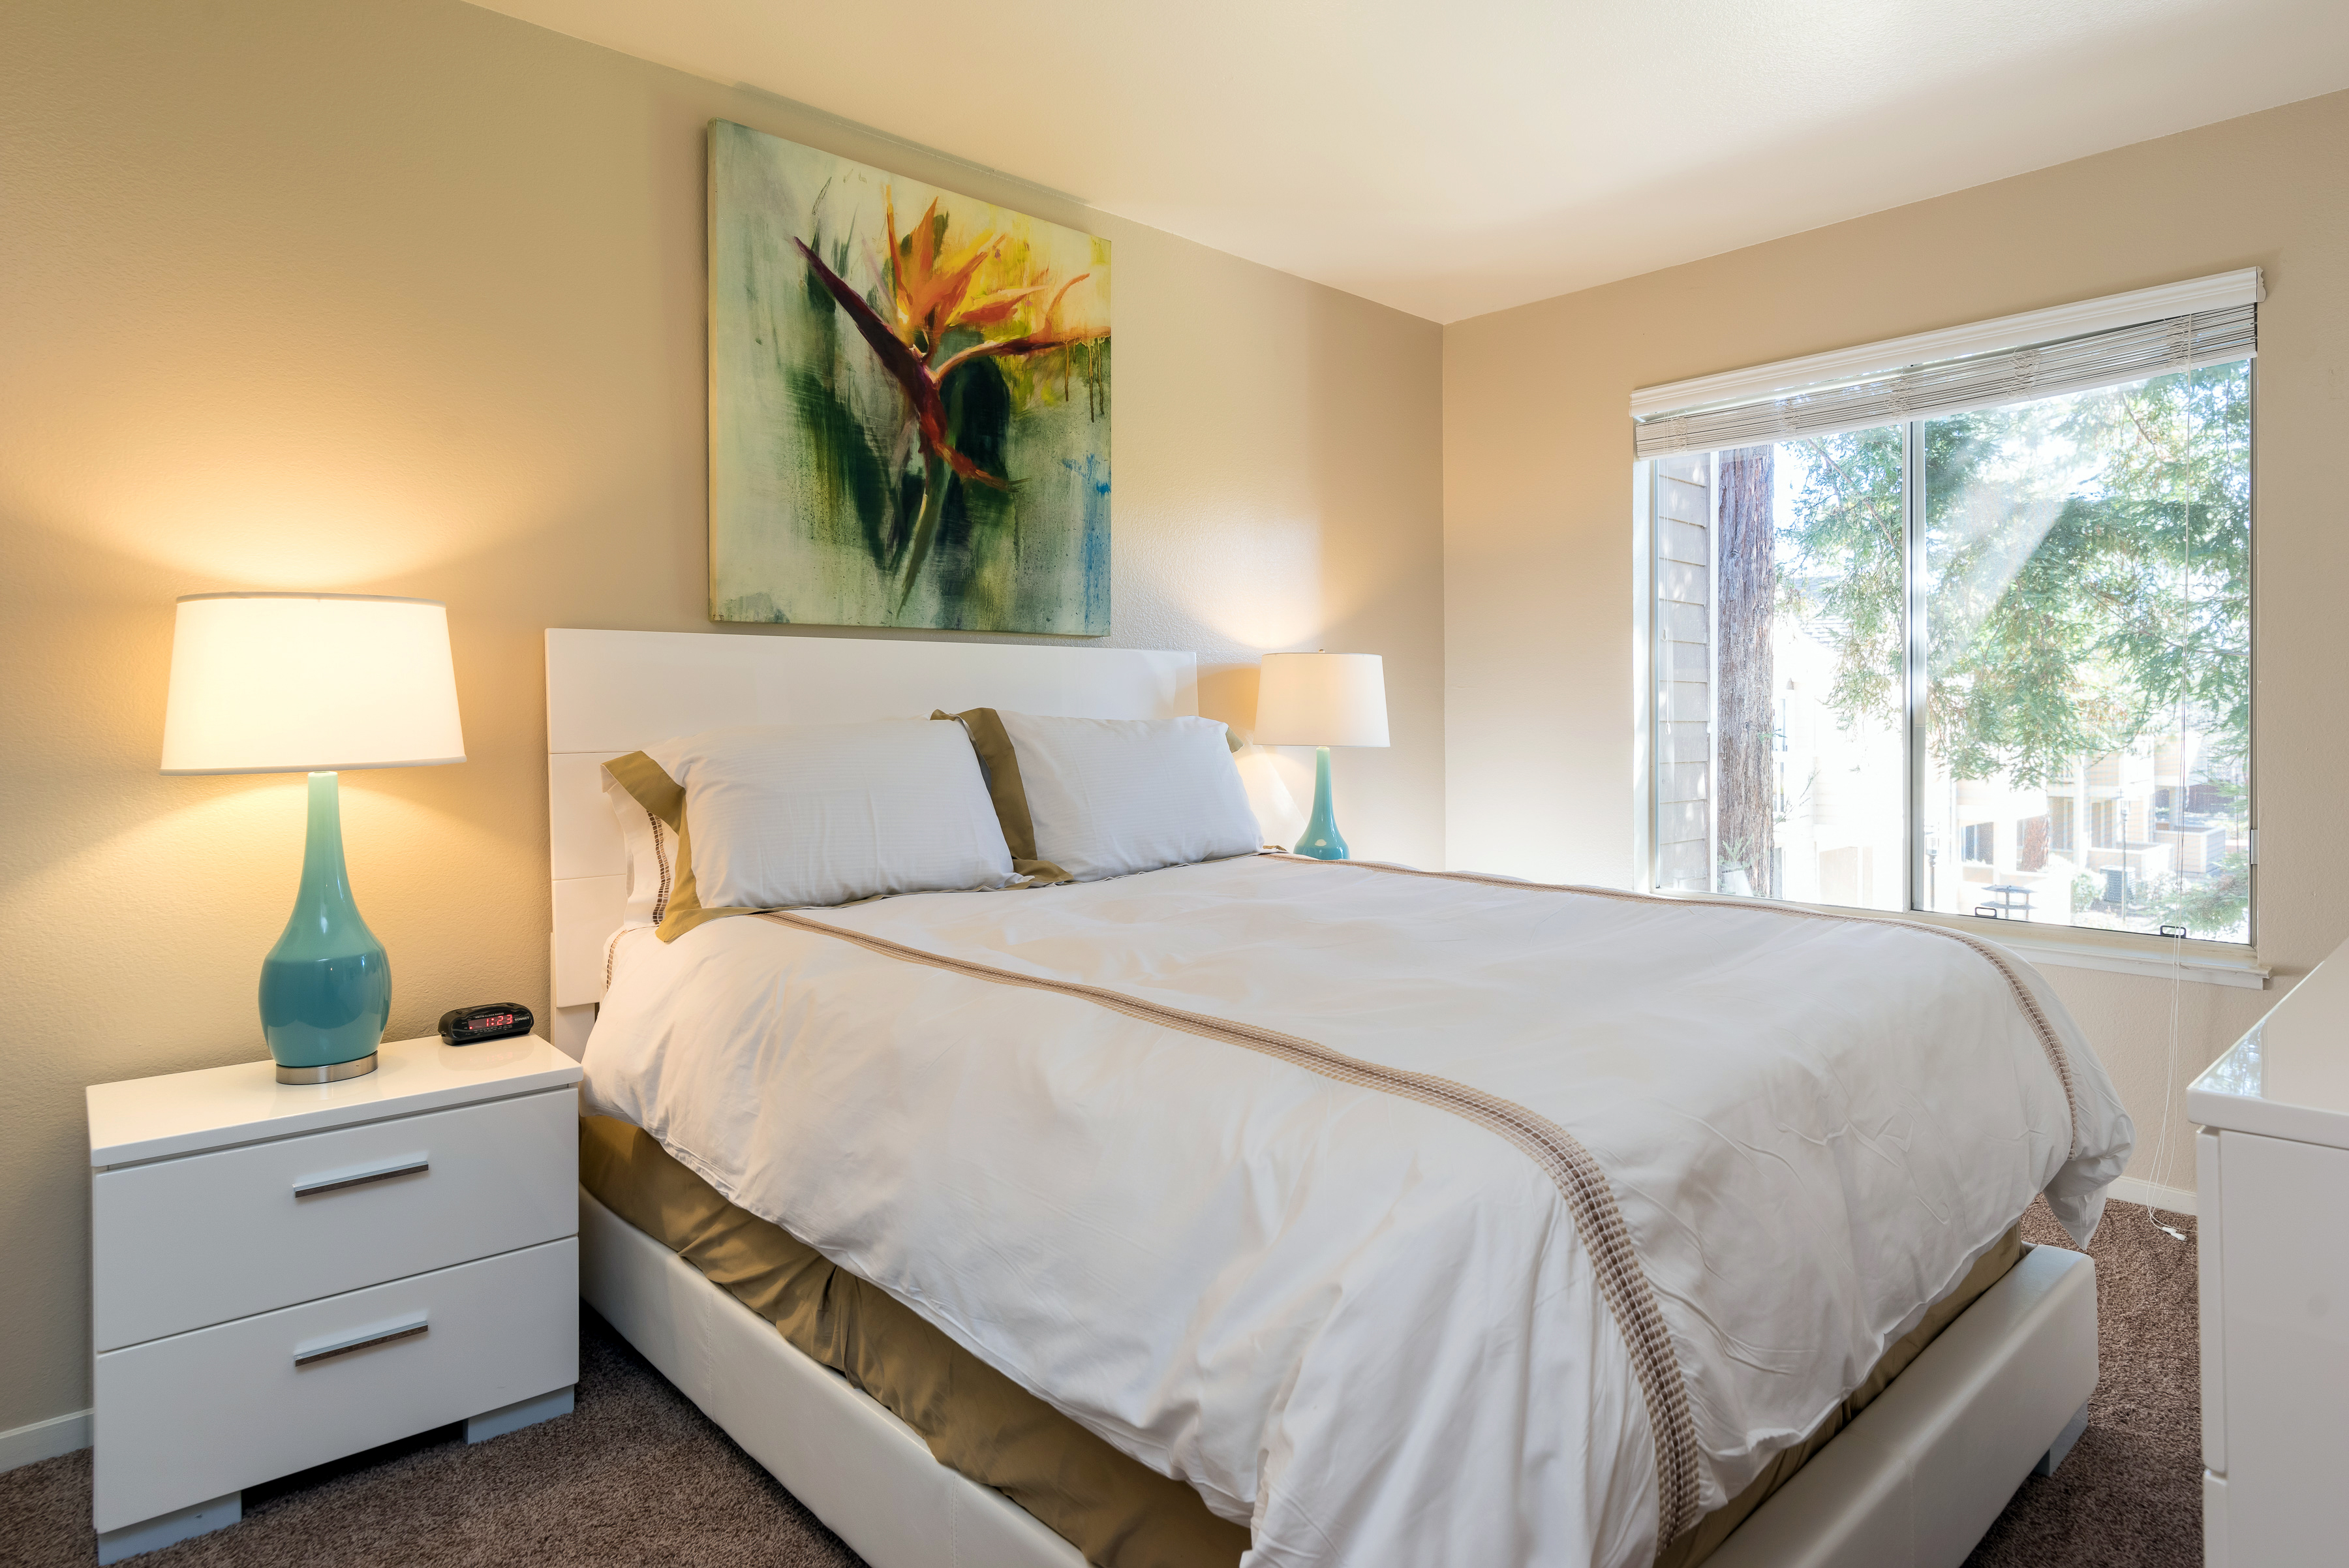 image 9 furnished 1 bedroom Apartment for rent in San Ramon, Contra Costa County